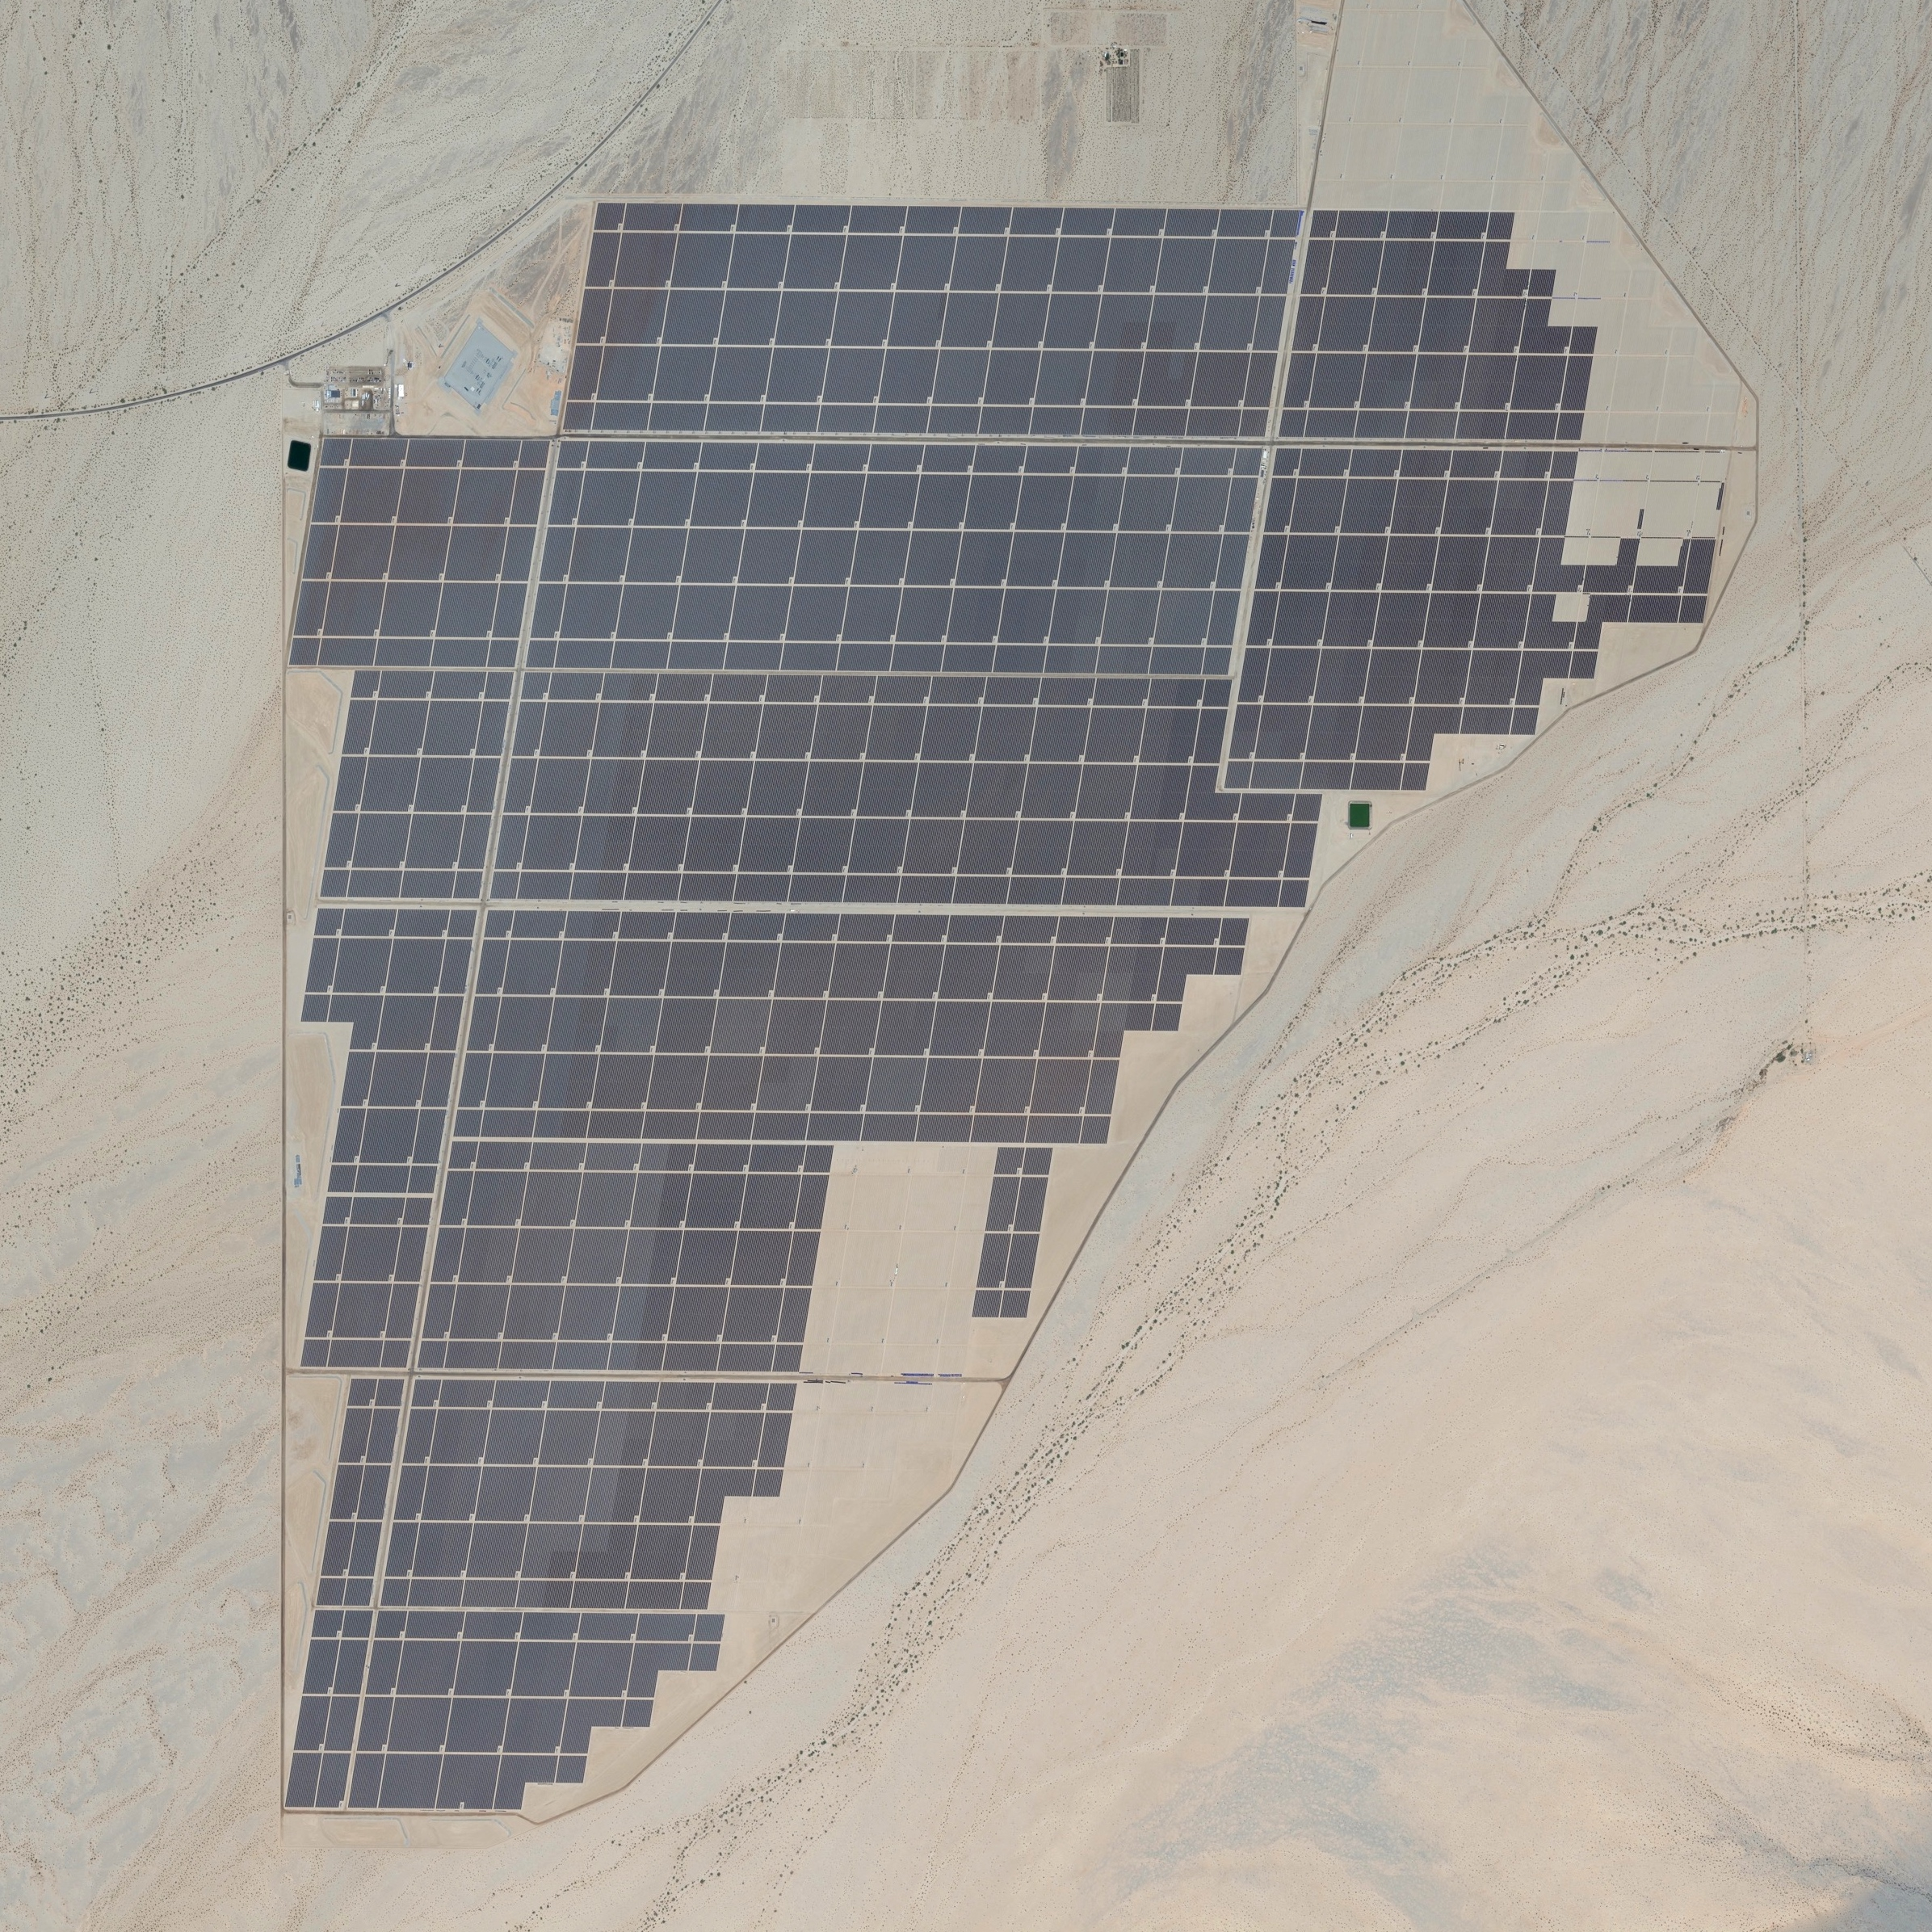 5/2/2015   Desert Sunlight Solar Farm   Desert Center, California, USA      33°49′30″N  115°23′30″W        The Desert Sunlight Solar Farm is a photovoltaic power station located in the Mojave Desert of California. Covering 6.2 square miles (16 square kilometers) with 8.8 million cadmium telluride solar modules, it is tied for the world's largest photovoltaic solar power farm.